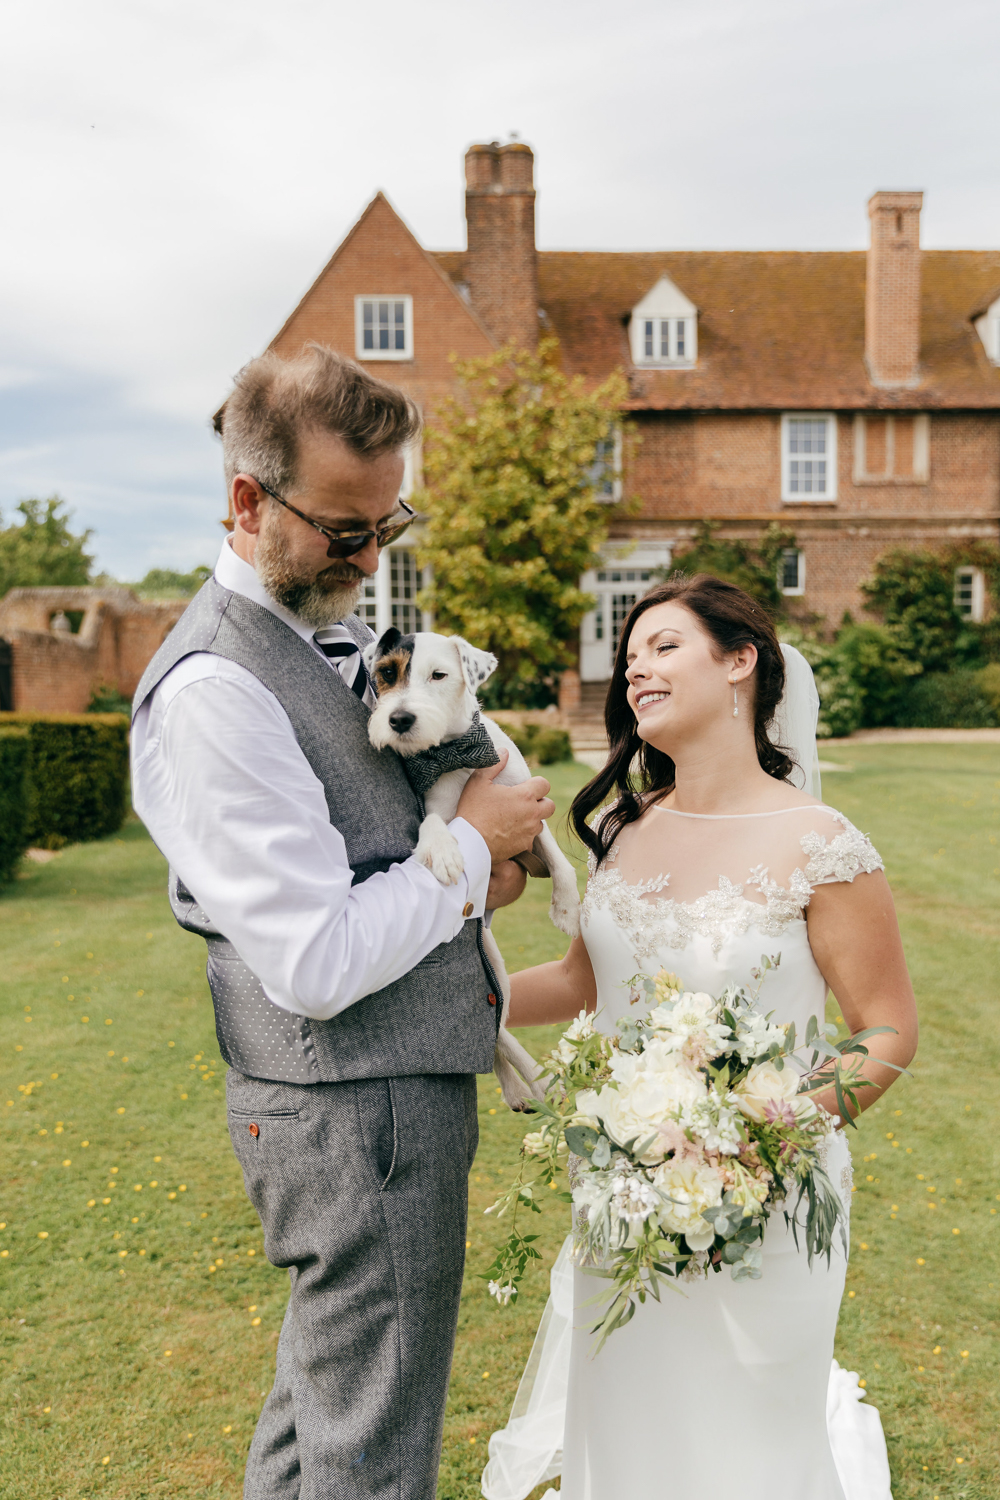 natural wedding day portraits with pet dog